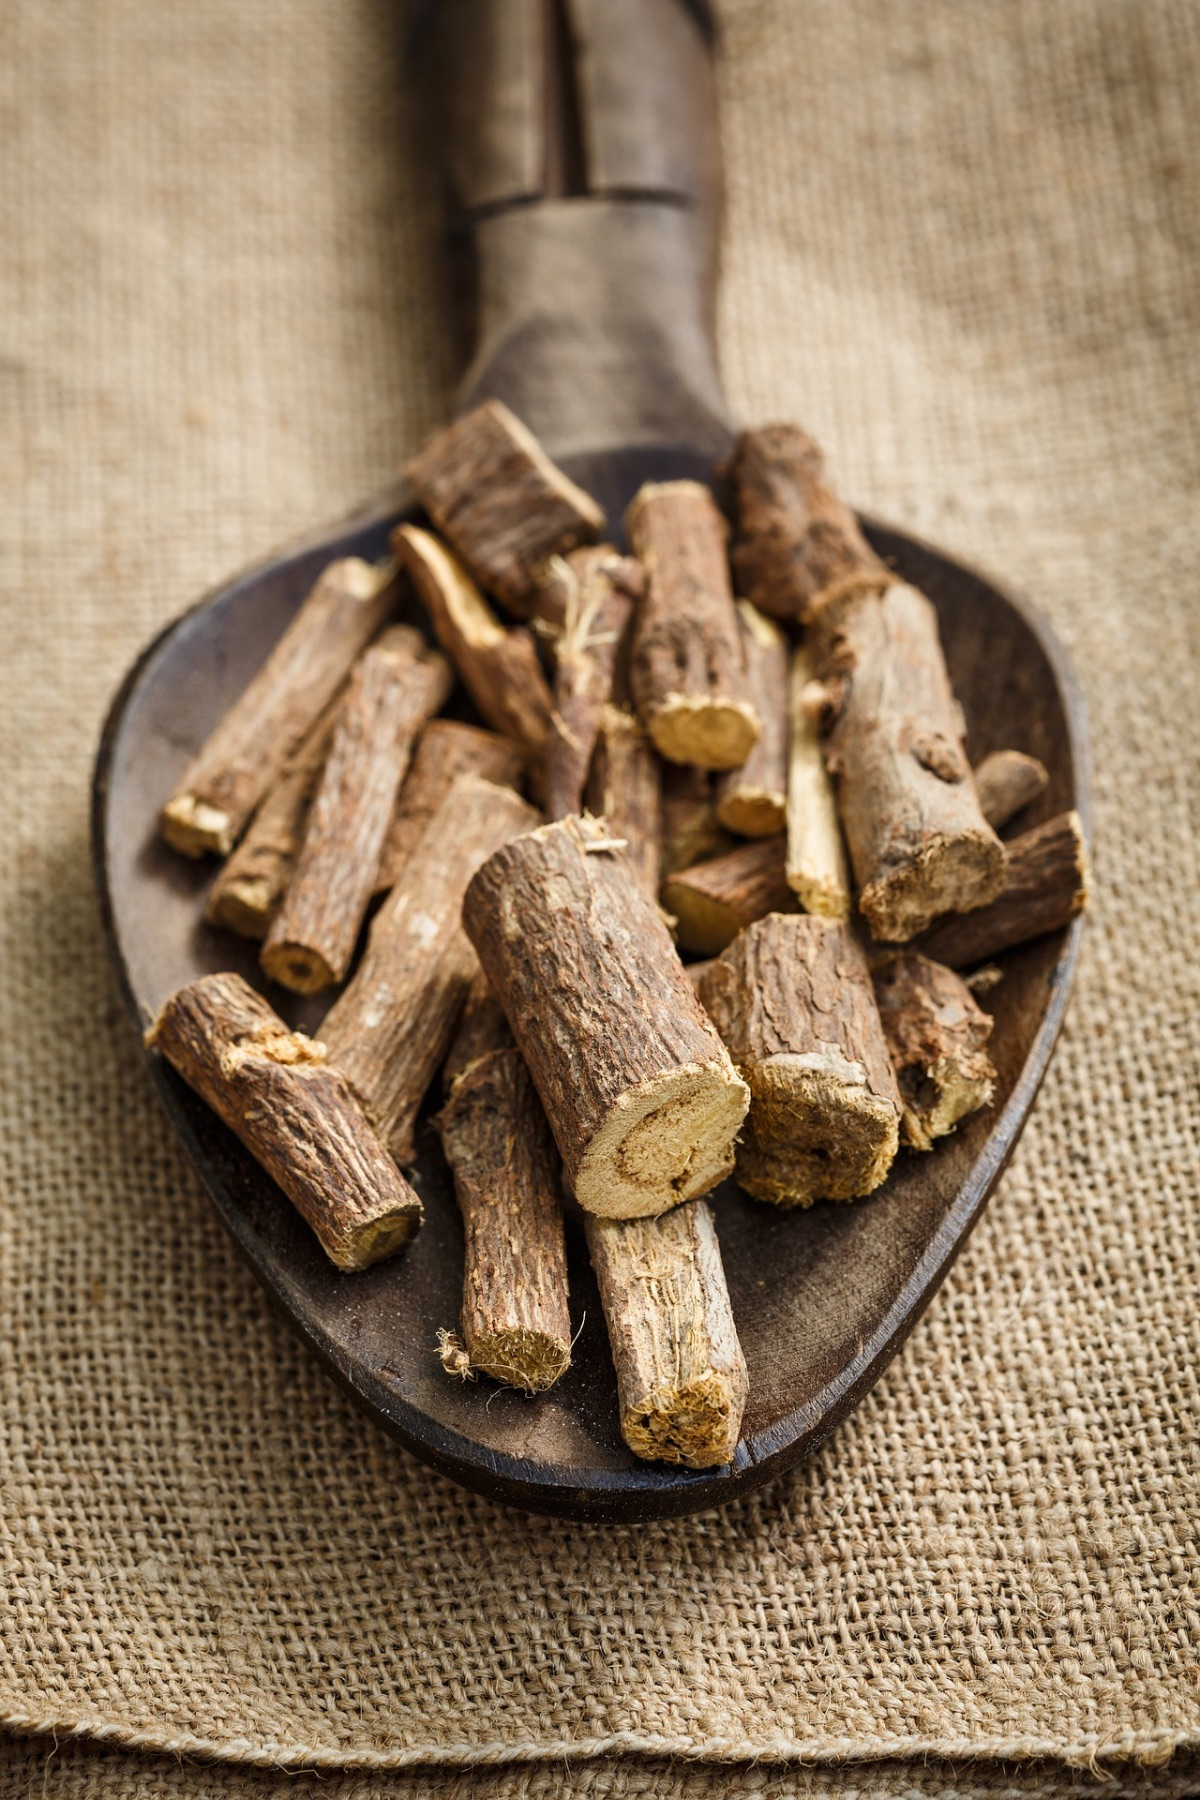 Herbal Roots 101: How to Prepare and Use Roots for Wellness | Herbal Academy | Use herbal roots for wellness! In this post, you'll learn when to harvest roots, how to prepare them for use, and you'll even find several recipes to try.